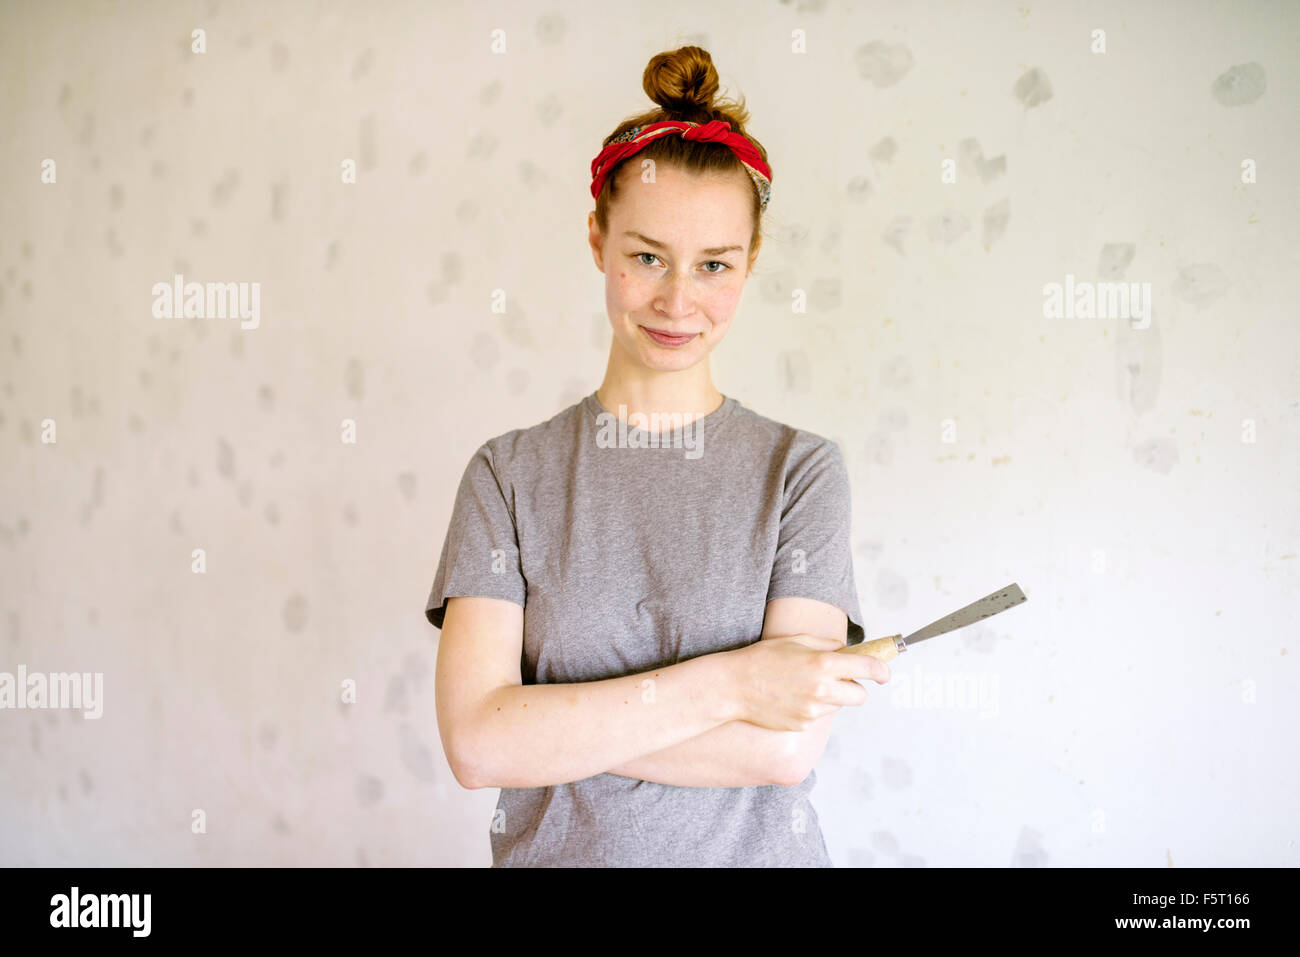 Sweden, Portrait of young woman holding hand tool - Stock Image